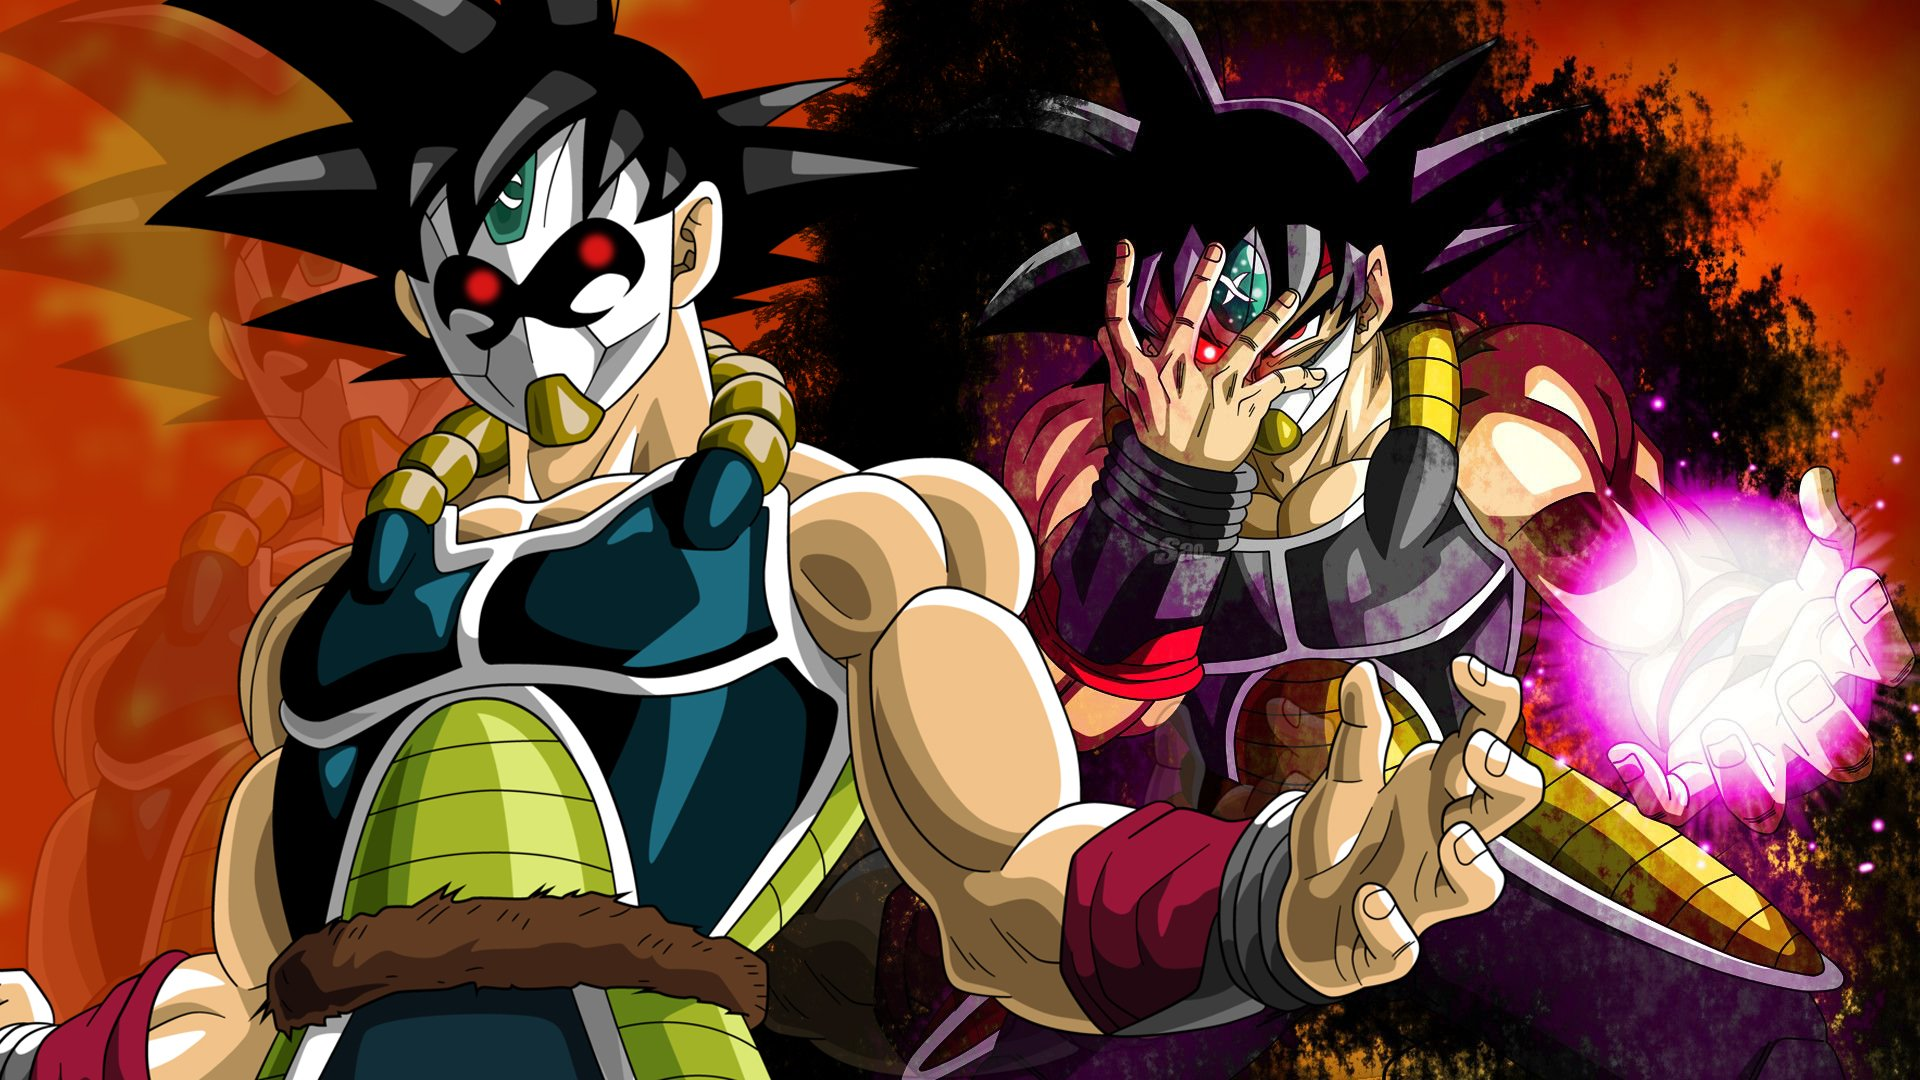 Bardock Hd Wallpaper Background Image 1920x1080 Id 944253 Wallpaper Abyss